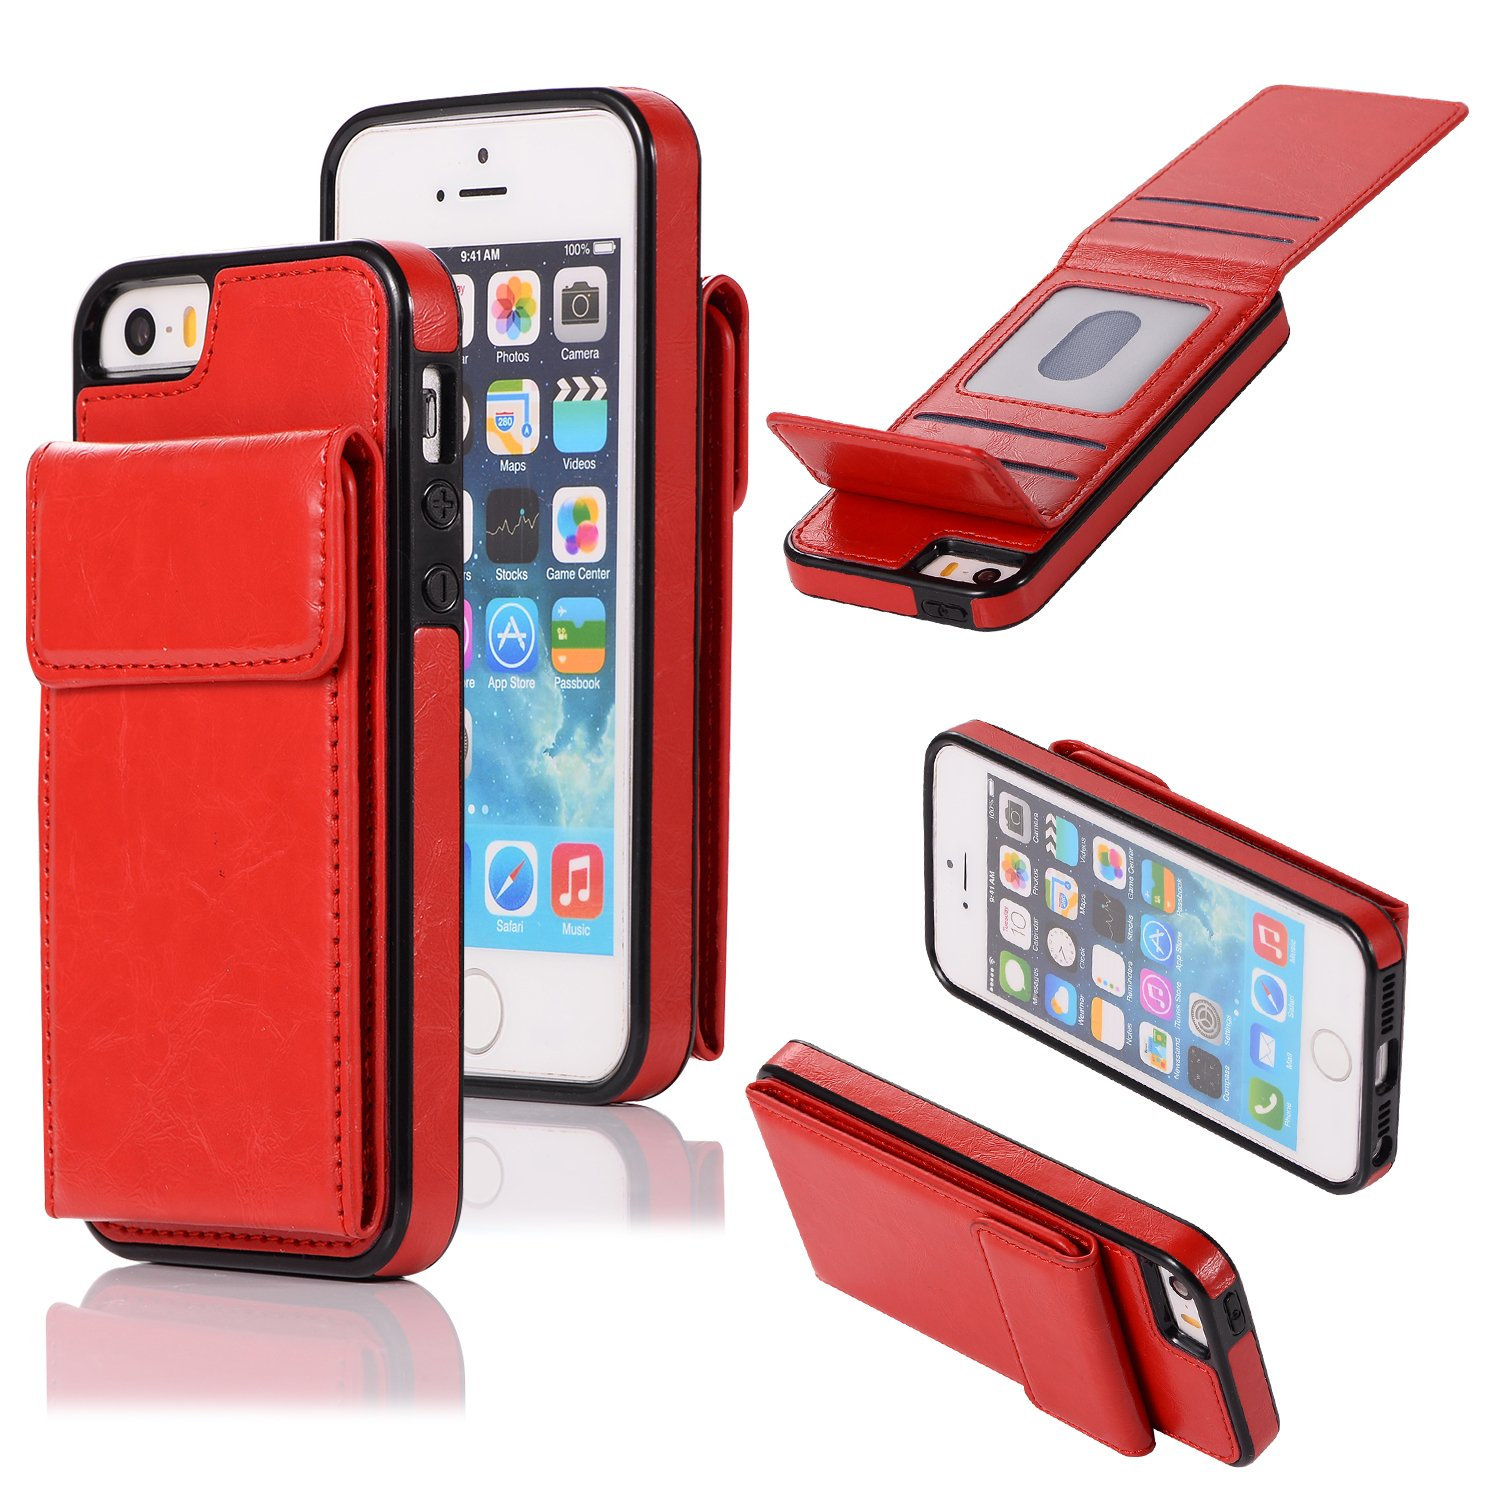 DAMONDY Wallet Case for iPhone 5S,iPhone 5,iPhone SE,Luxury Wallet Purse Card Holders Design Cover Soft Shockproof Bumper Folio Flip Leather Kickstand Case for iPhone SE 5S 5-red by DAMONDY